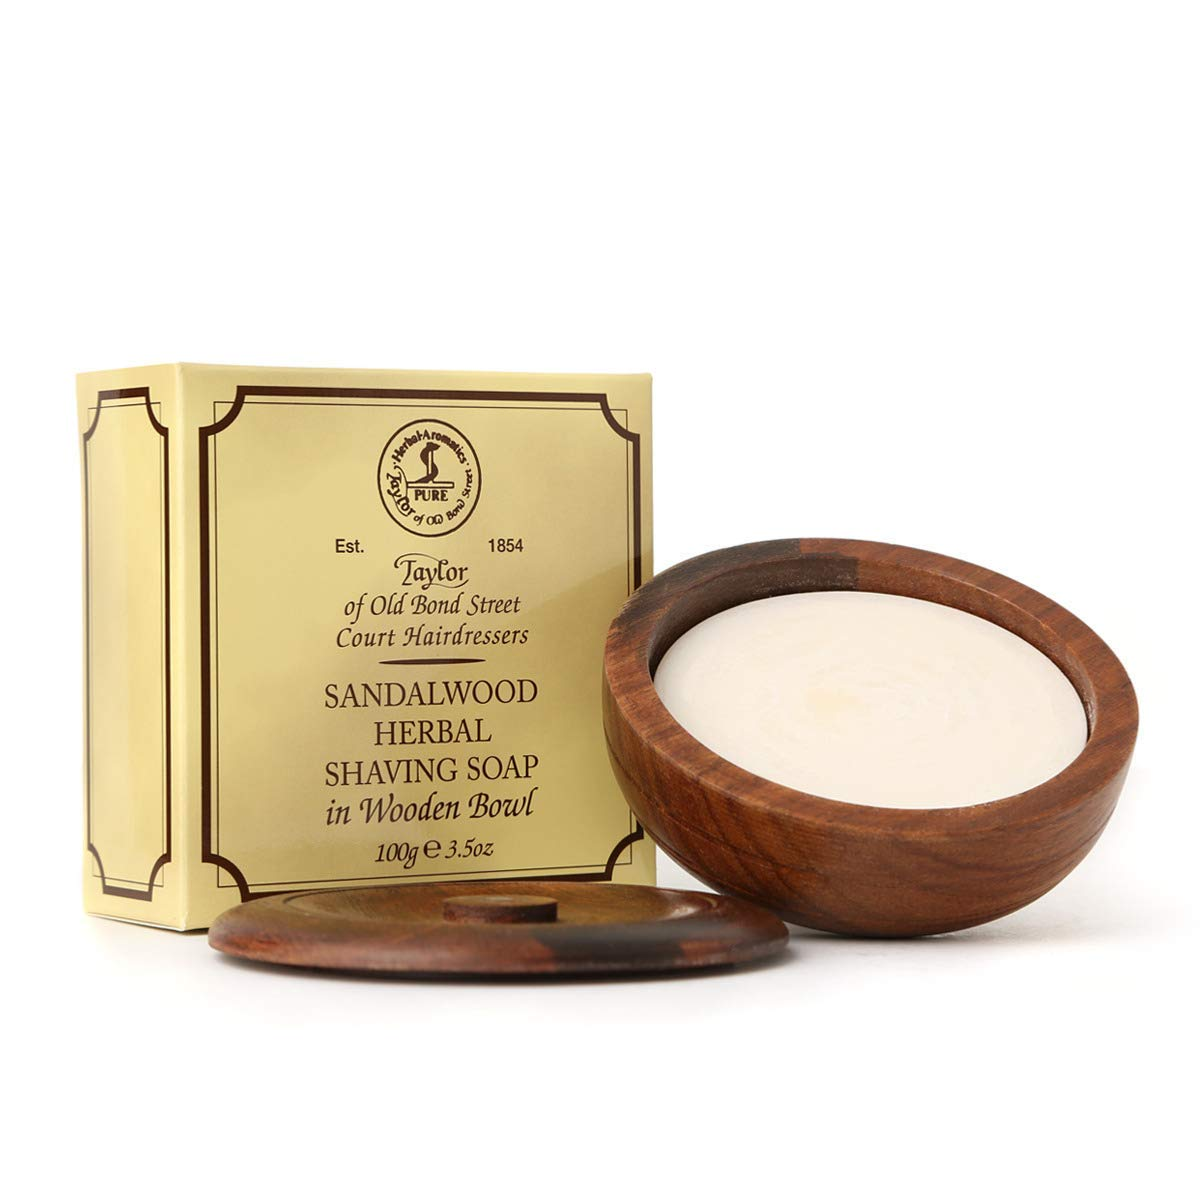 Taylor of Old Bond Street 100g Luxury Wooden Bowl Sandalwood Herbal Shaving Soap product image